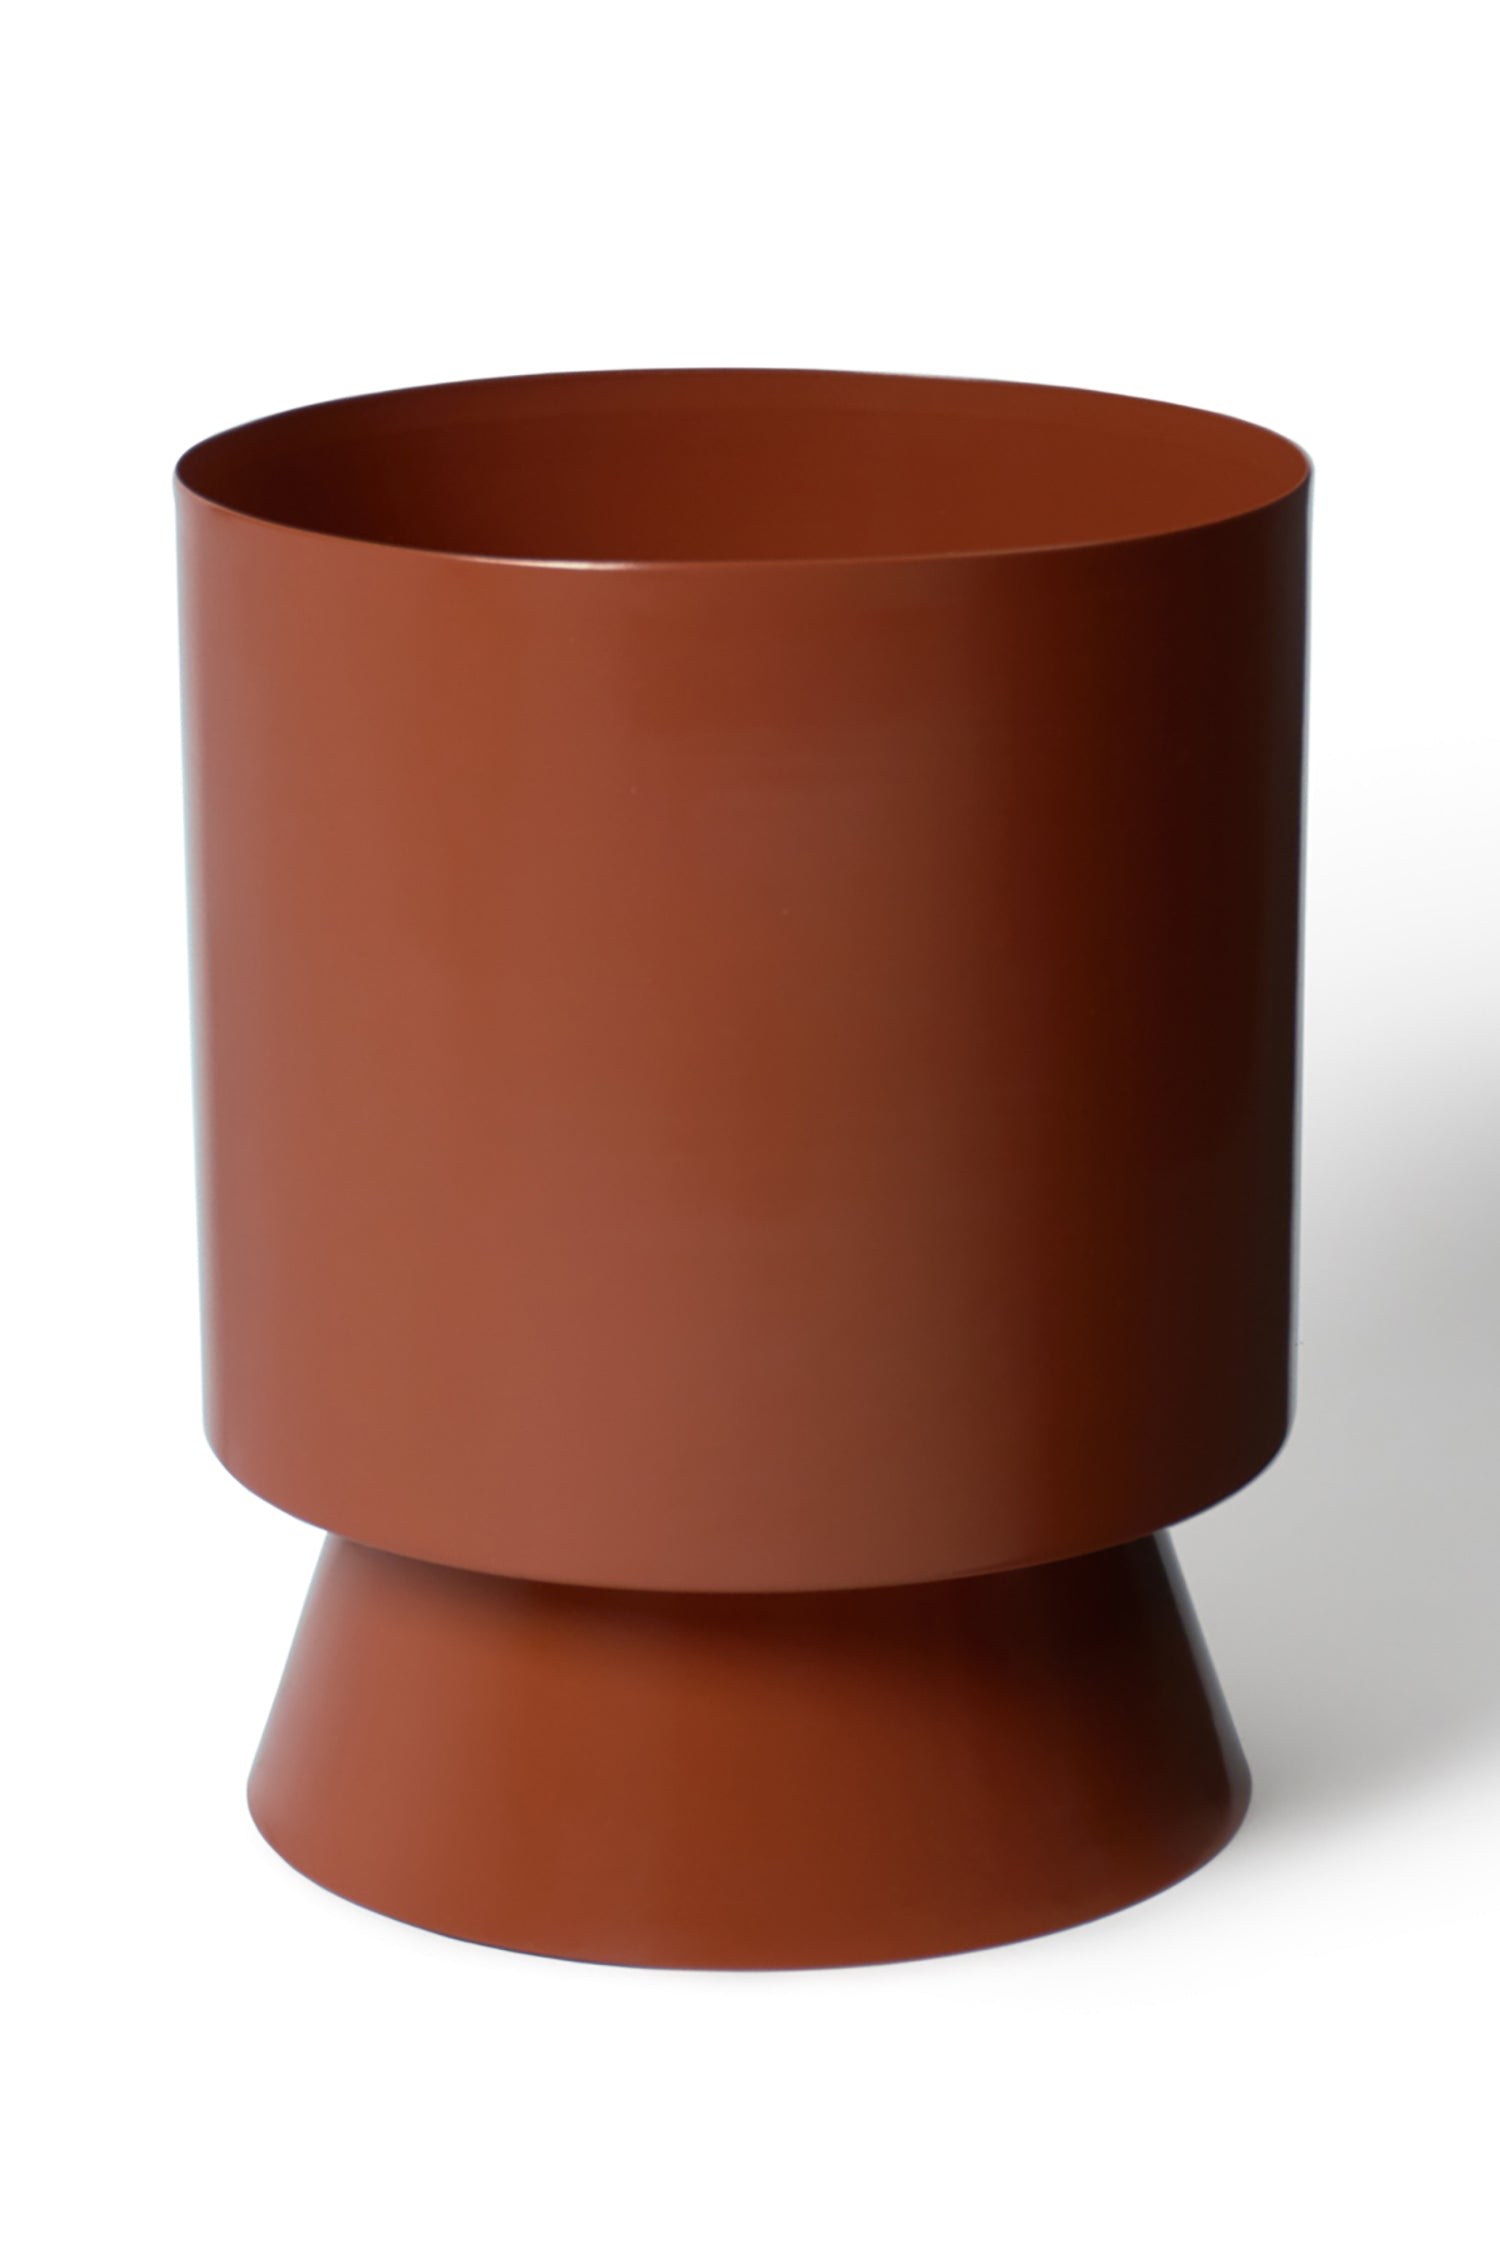 Palm Springs Planter Large - Burnt Sienna